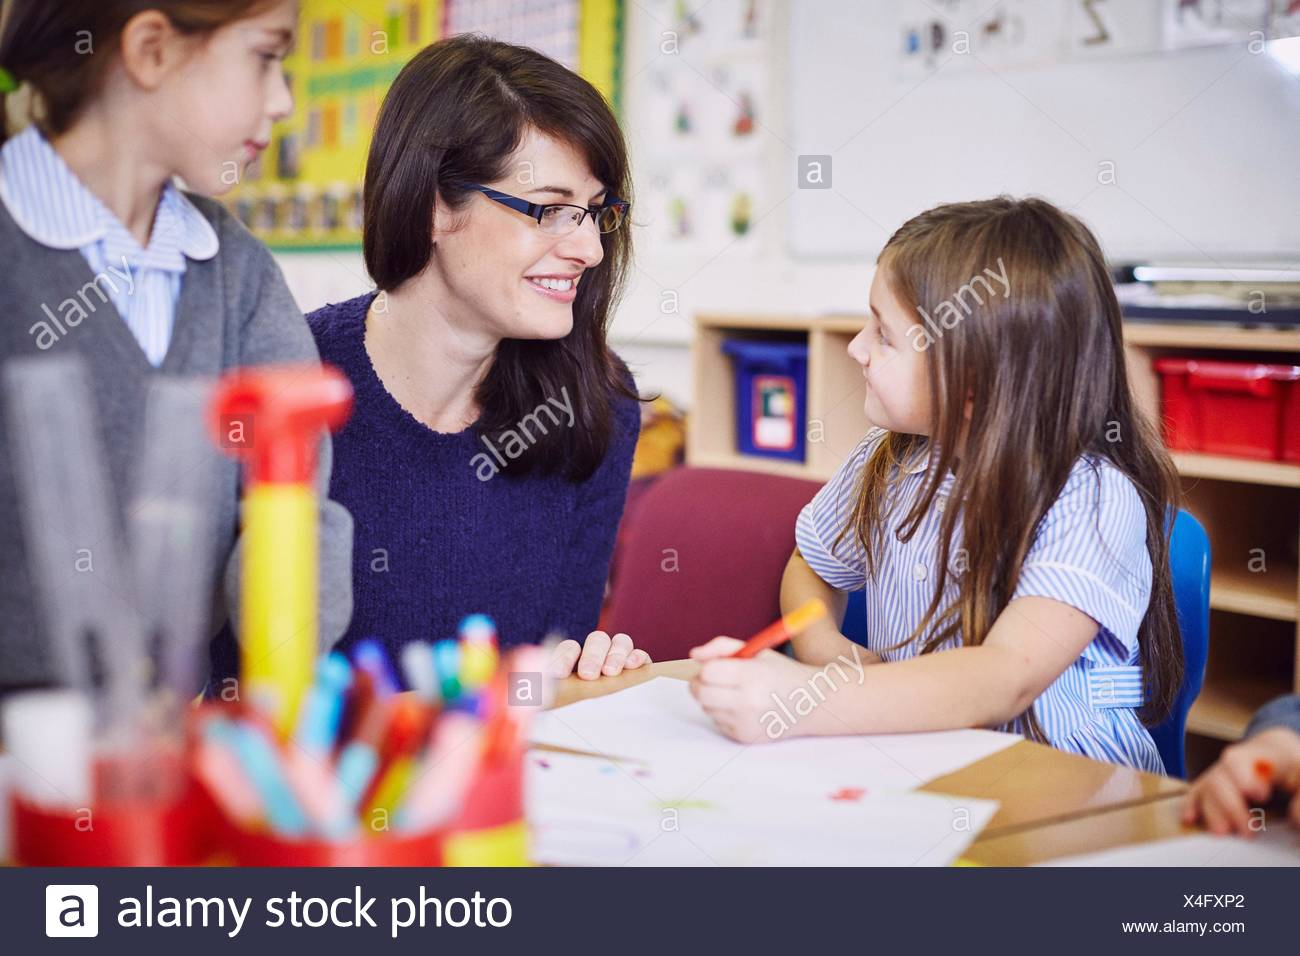 Girls drawing at desks in elementary school classroom - Stock Image